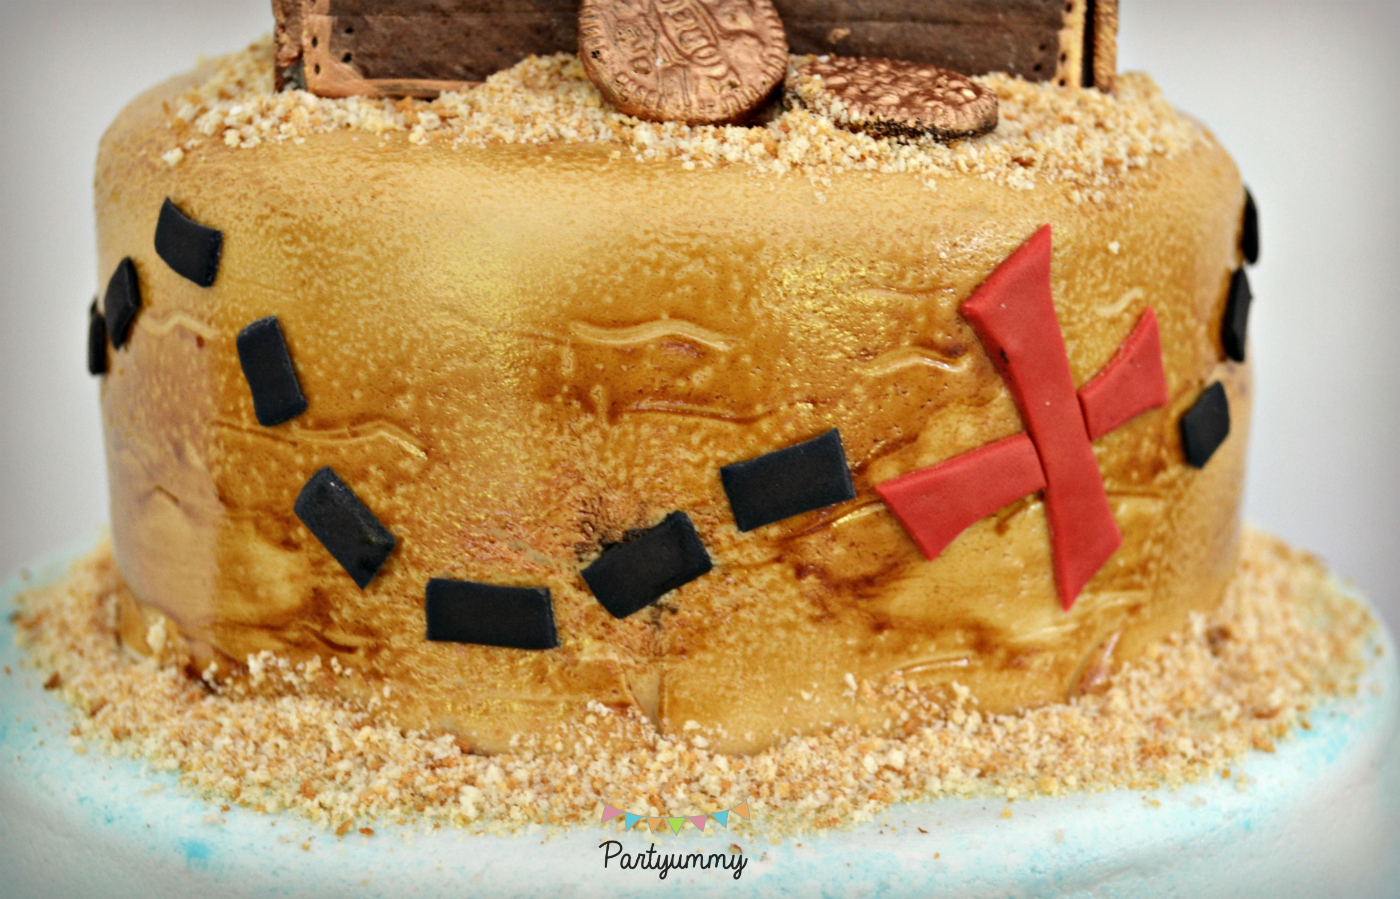 gateau-pirate-etage-sable-carte-tresor-treasure-map